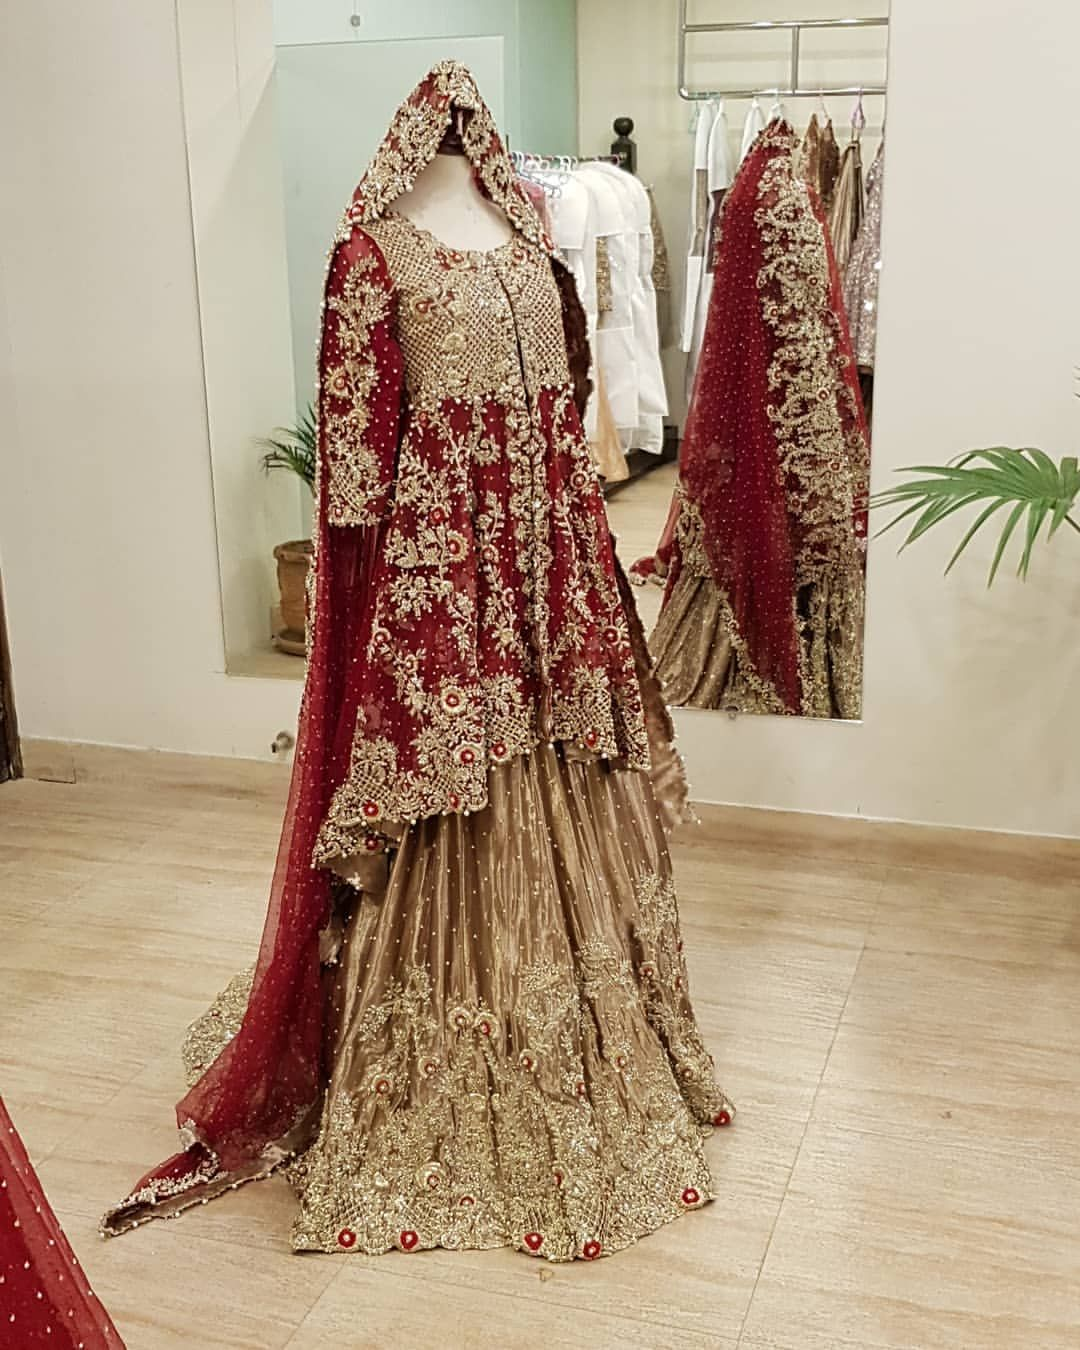 3 676 Likes 115 Comments Samsara Official Samsaracouturehouse On Instagram Omg The Red Bridal Dress Pakistani Bridal Wear Indian Bridal Dress [ 1350 x 1080 Pixel ]